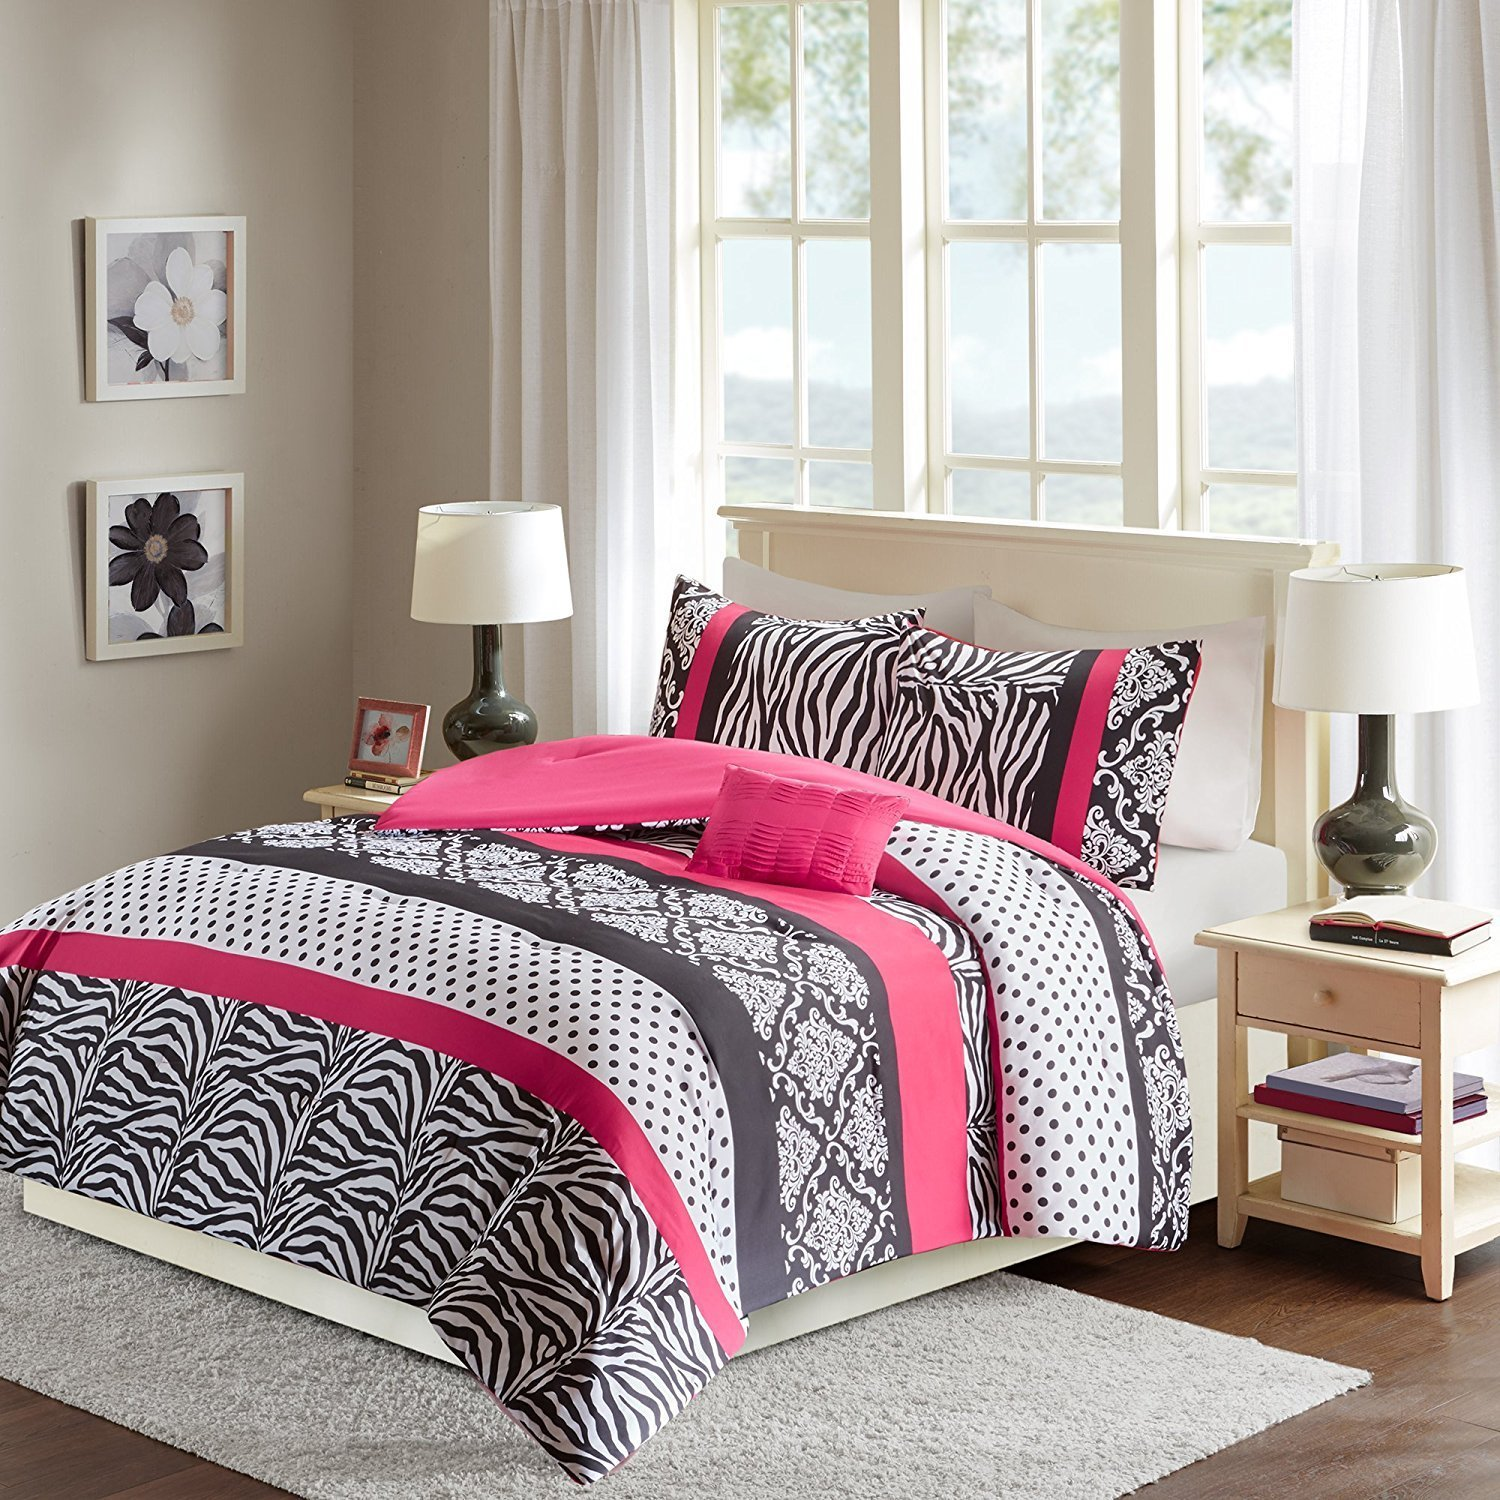 Best Pink And Black Zebra Bedding – Achieving A Stylish Child S With Pictures